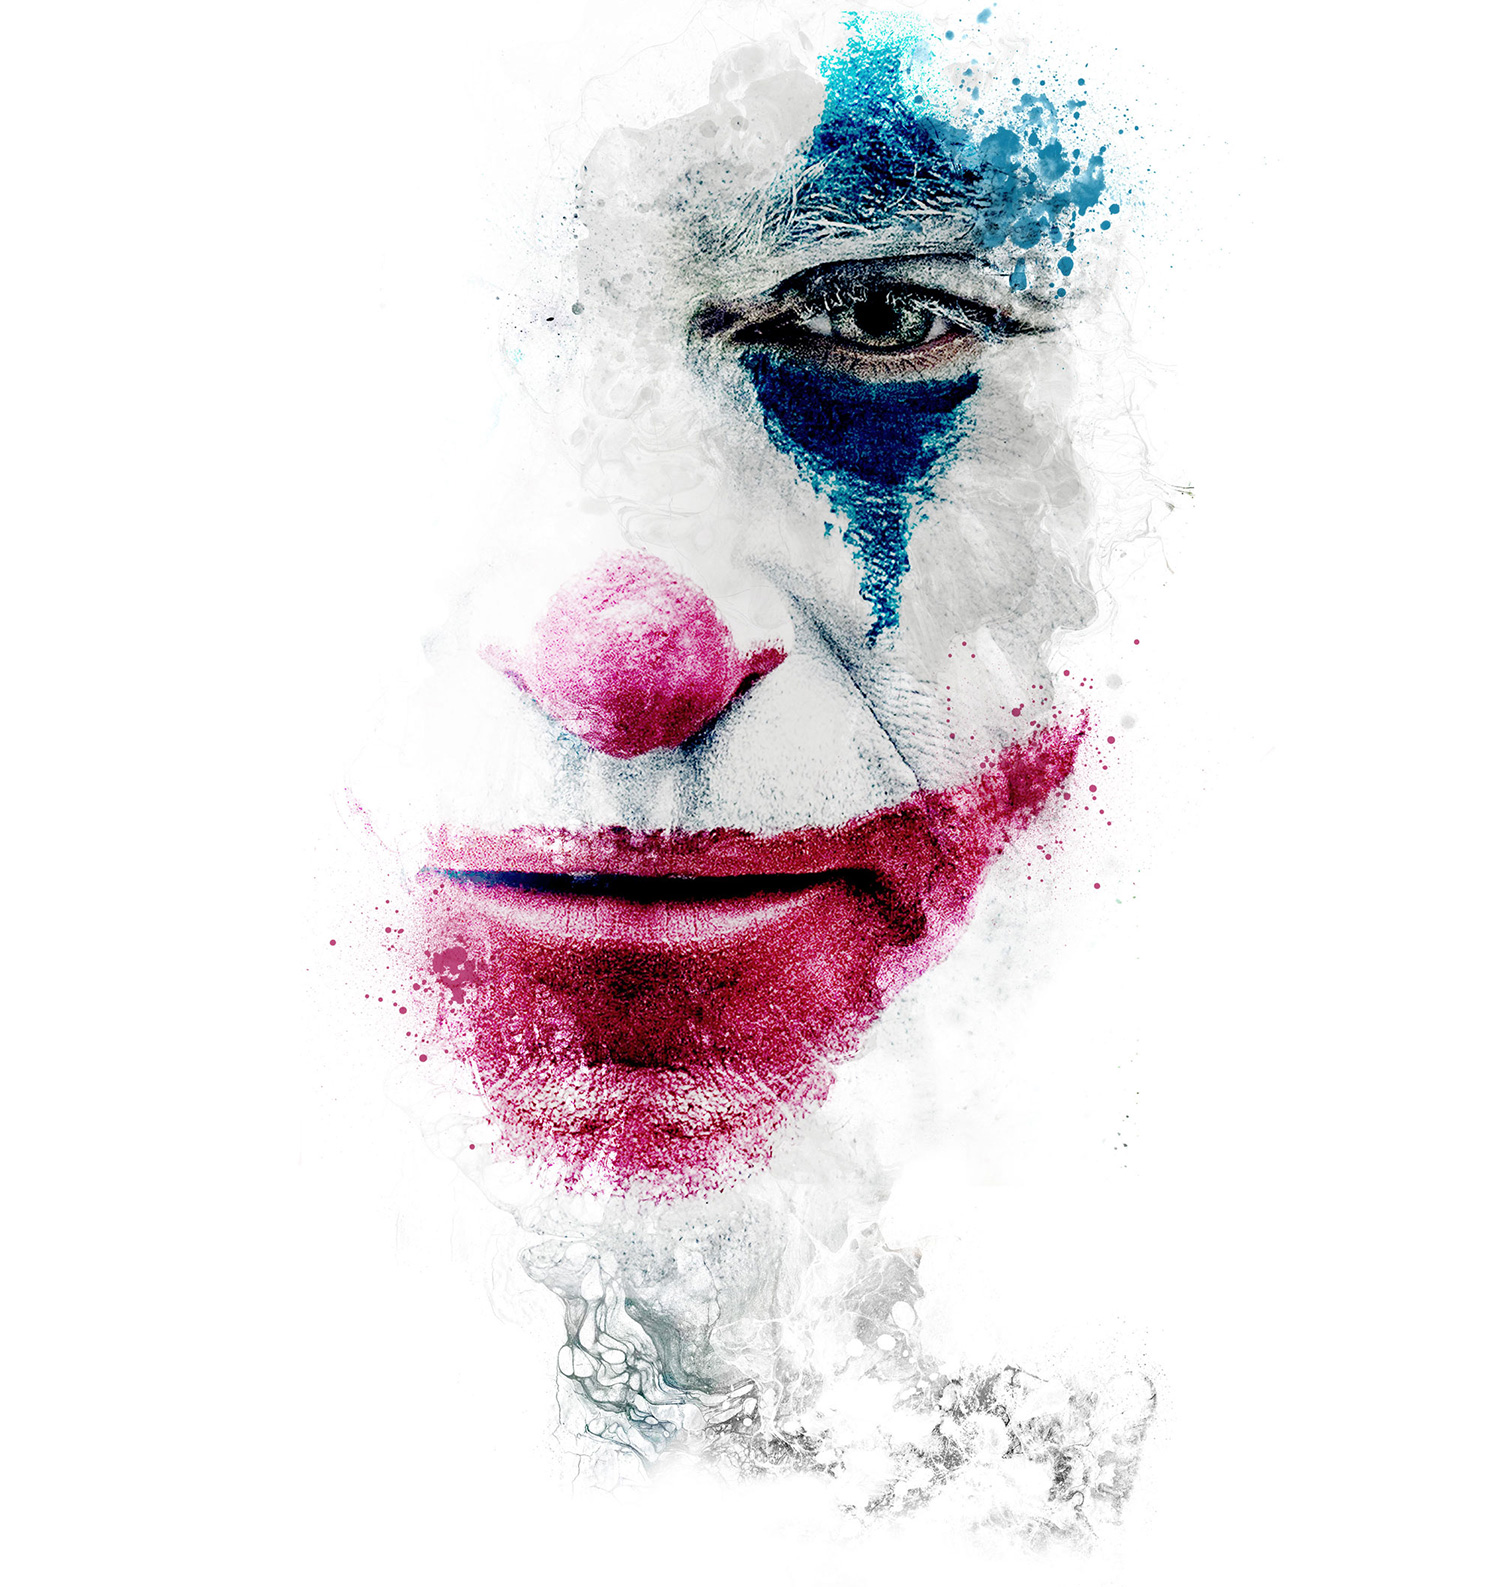 joker by Mr Cup